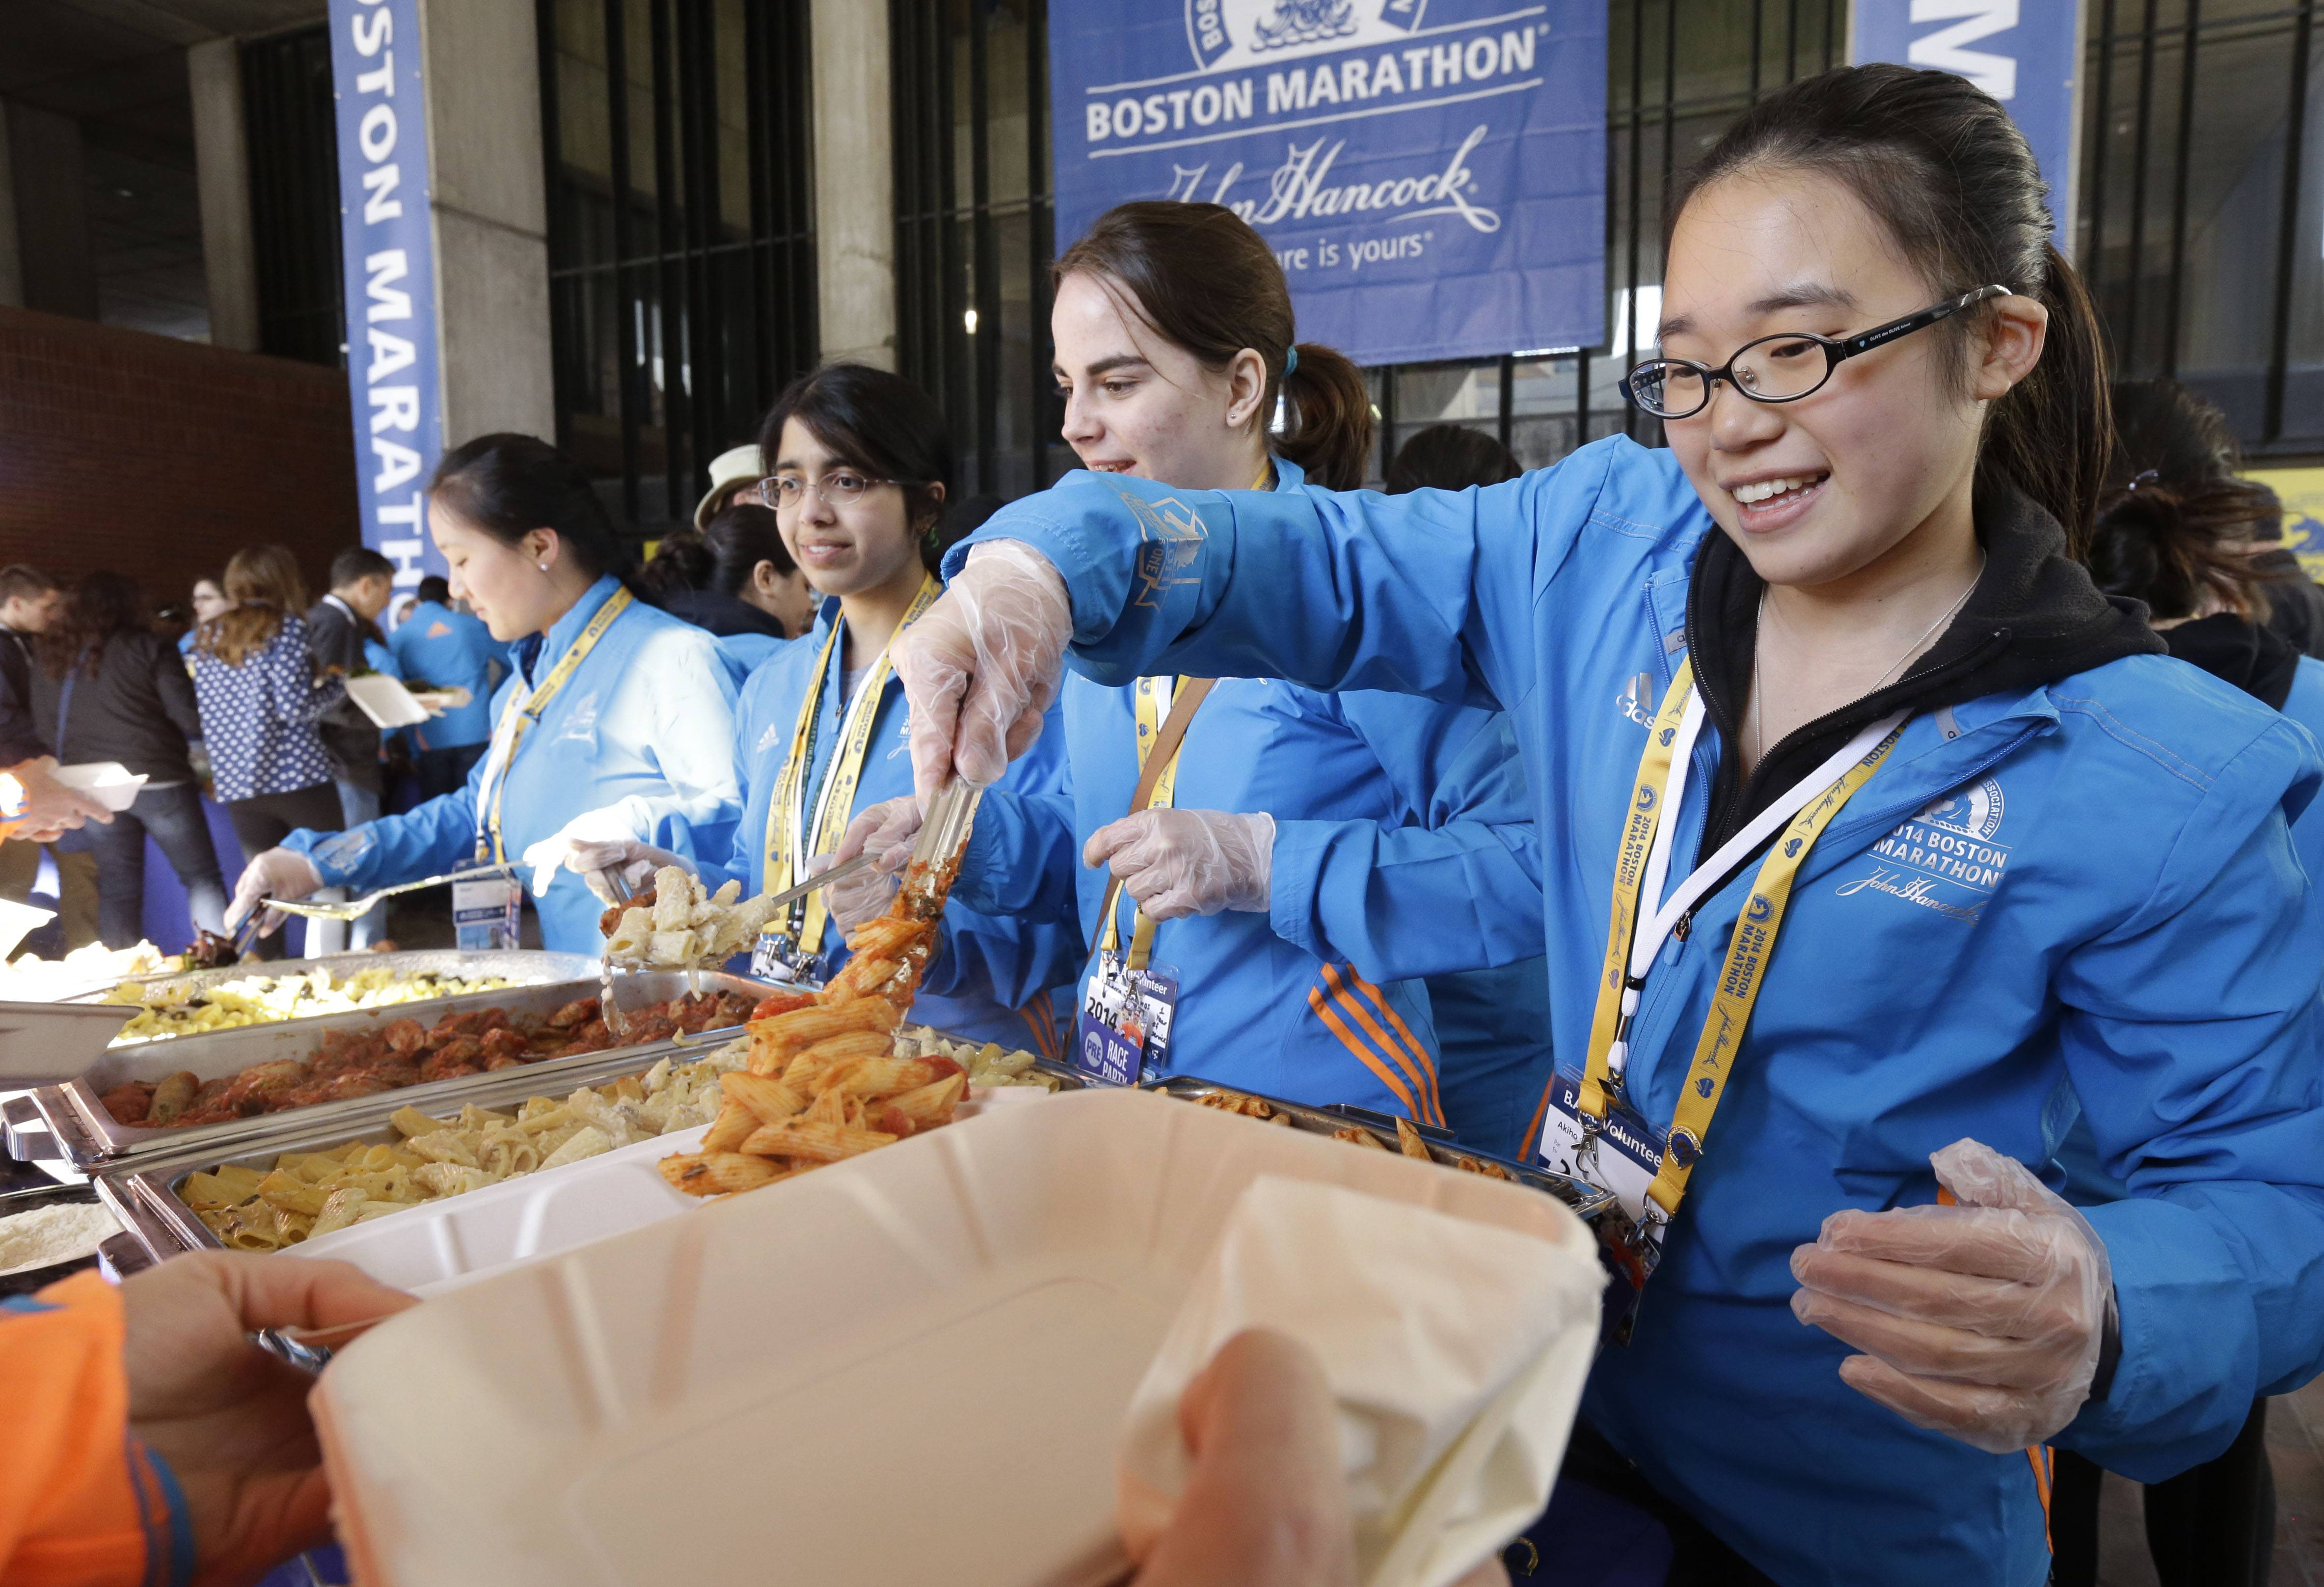 Wellesley College student Akiho Saito, of Tokyo, right, serves pasta during a Boston Marathon pre-race dinner at Boston City Hall Sunday. With an expanded field of runners and the memory of last year's bombings the 2014 Boston Marathon could bring an unprecedented wave of visitors to the area.